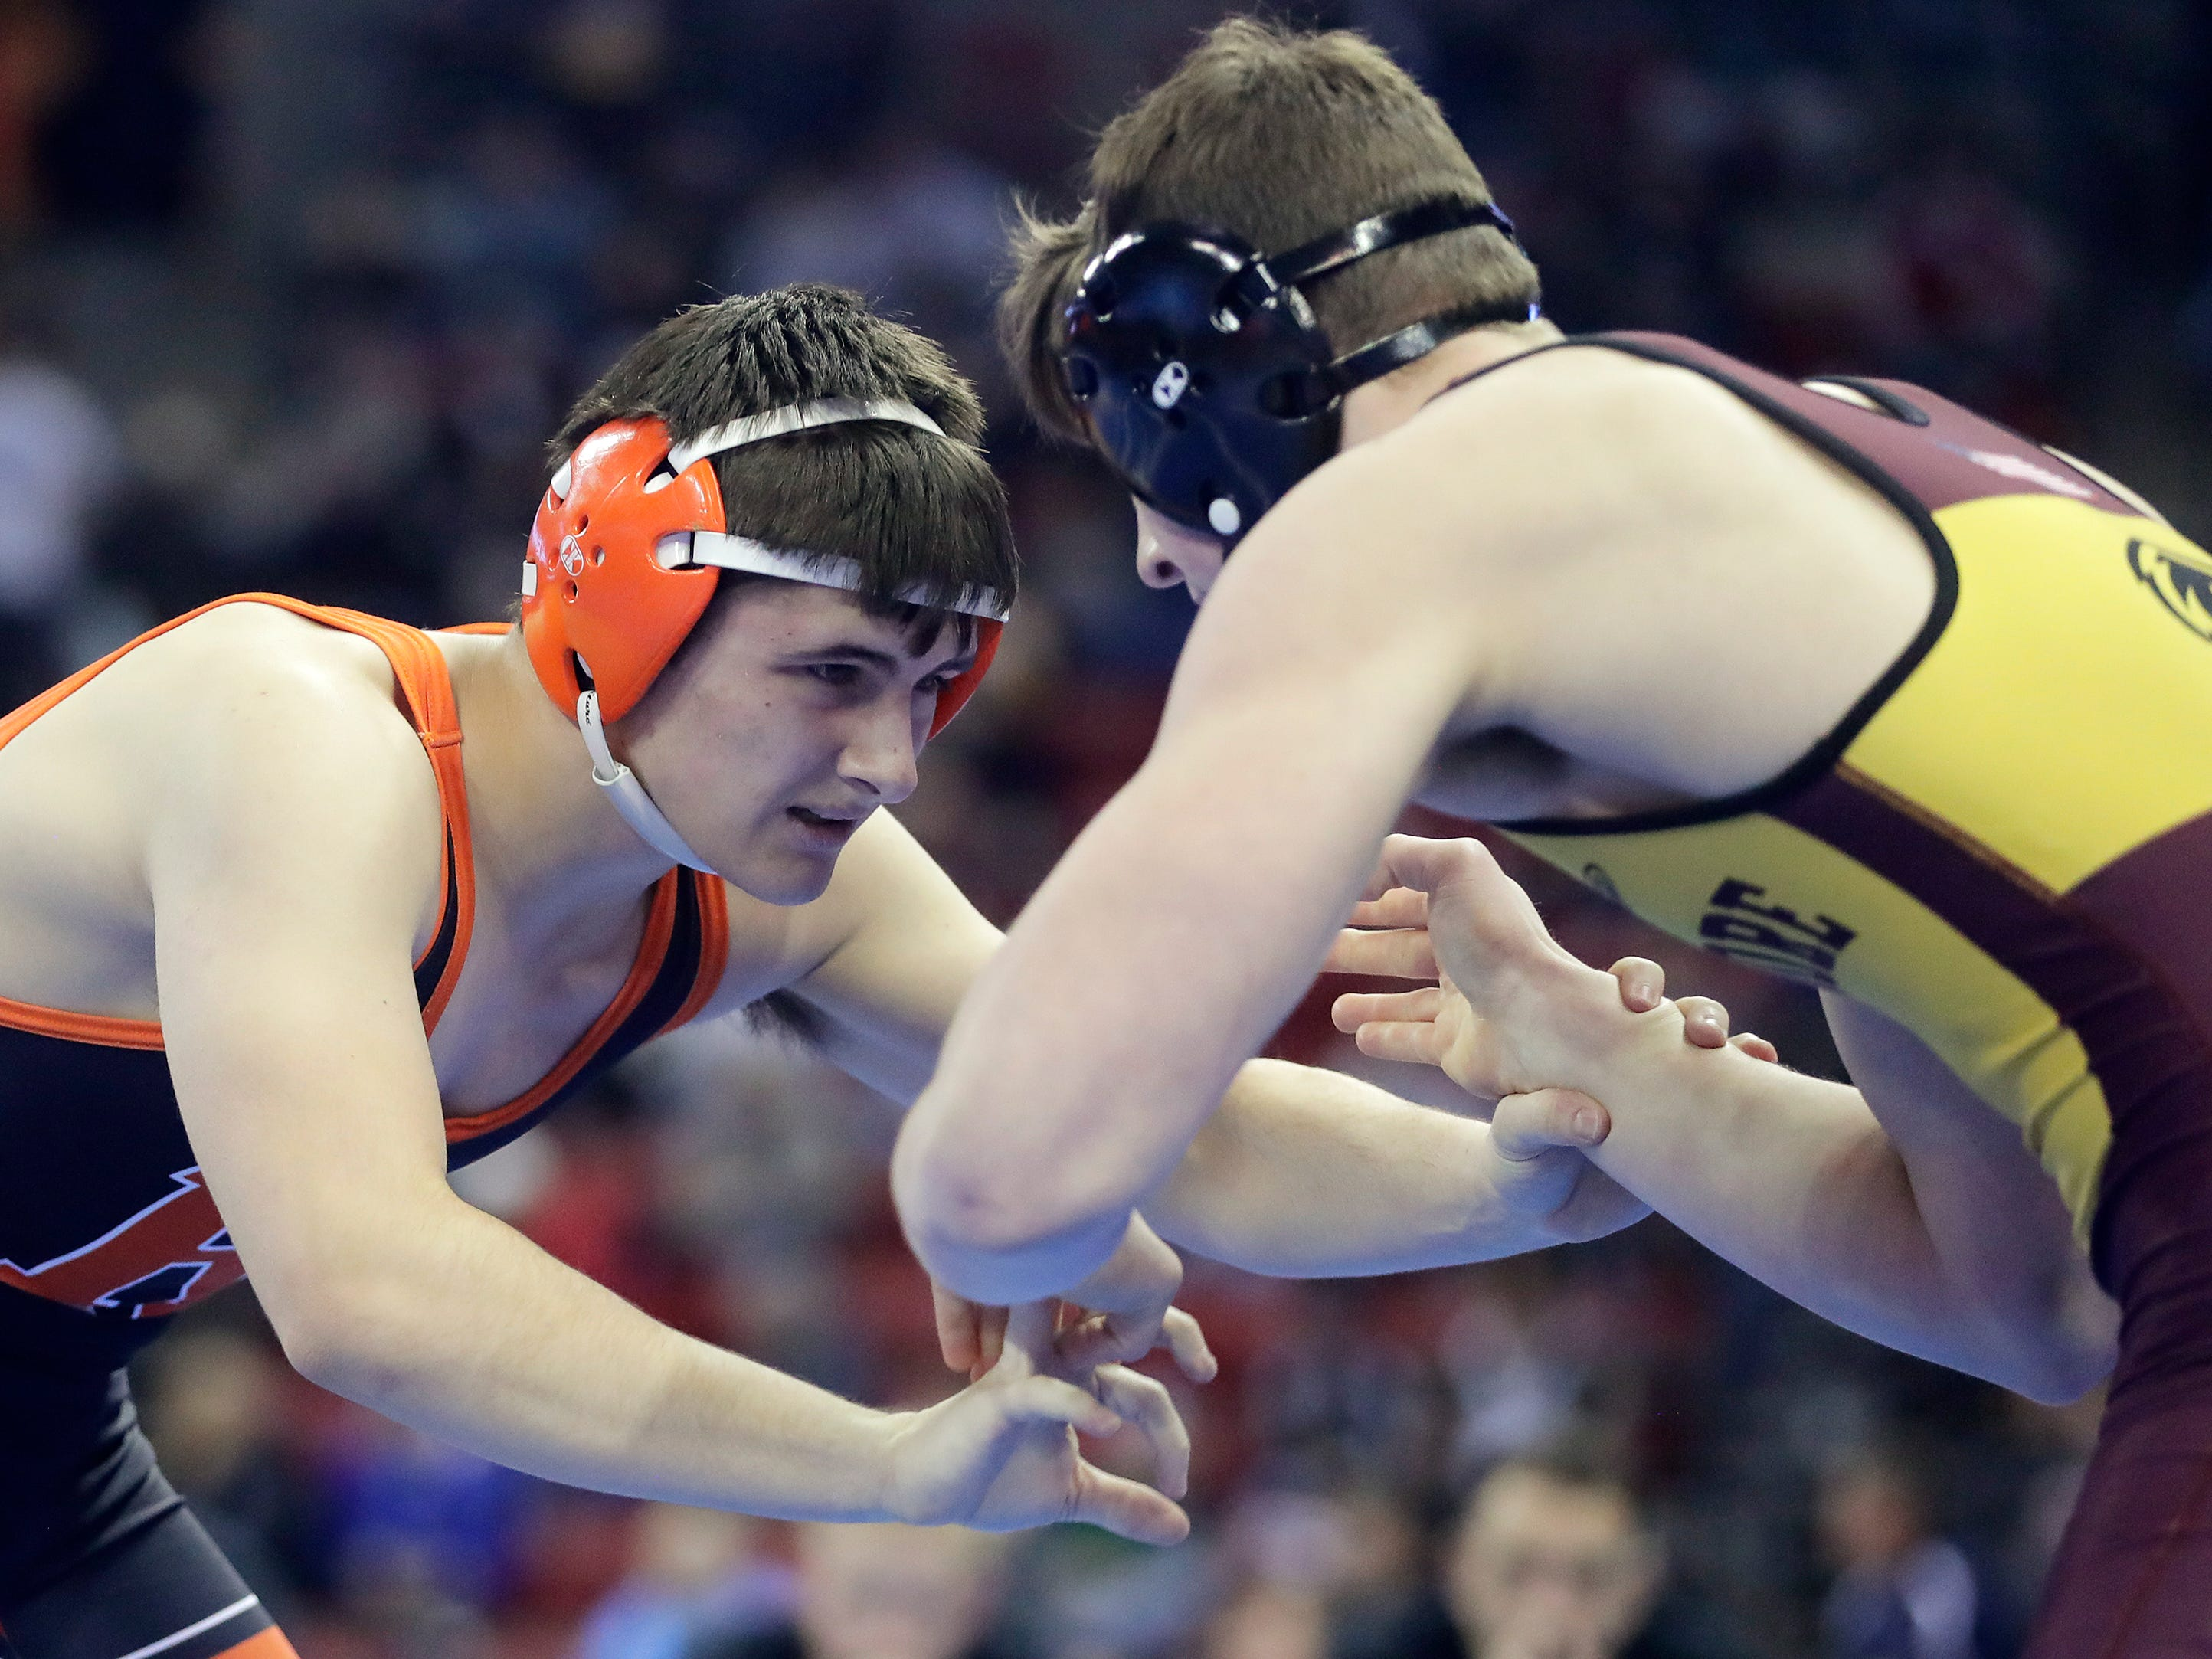 Cedar Grove-Belgium's Aaron Duenk wrestles in a Division 3 195-pound preliminary match at the WIAA state individual wrestling tournament at the Kohl Center on Thursday, February 21, 2019 in Madison, Wis.